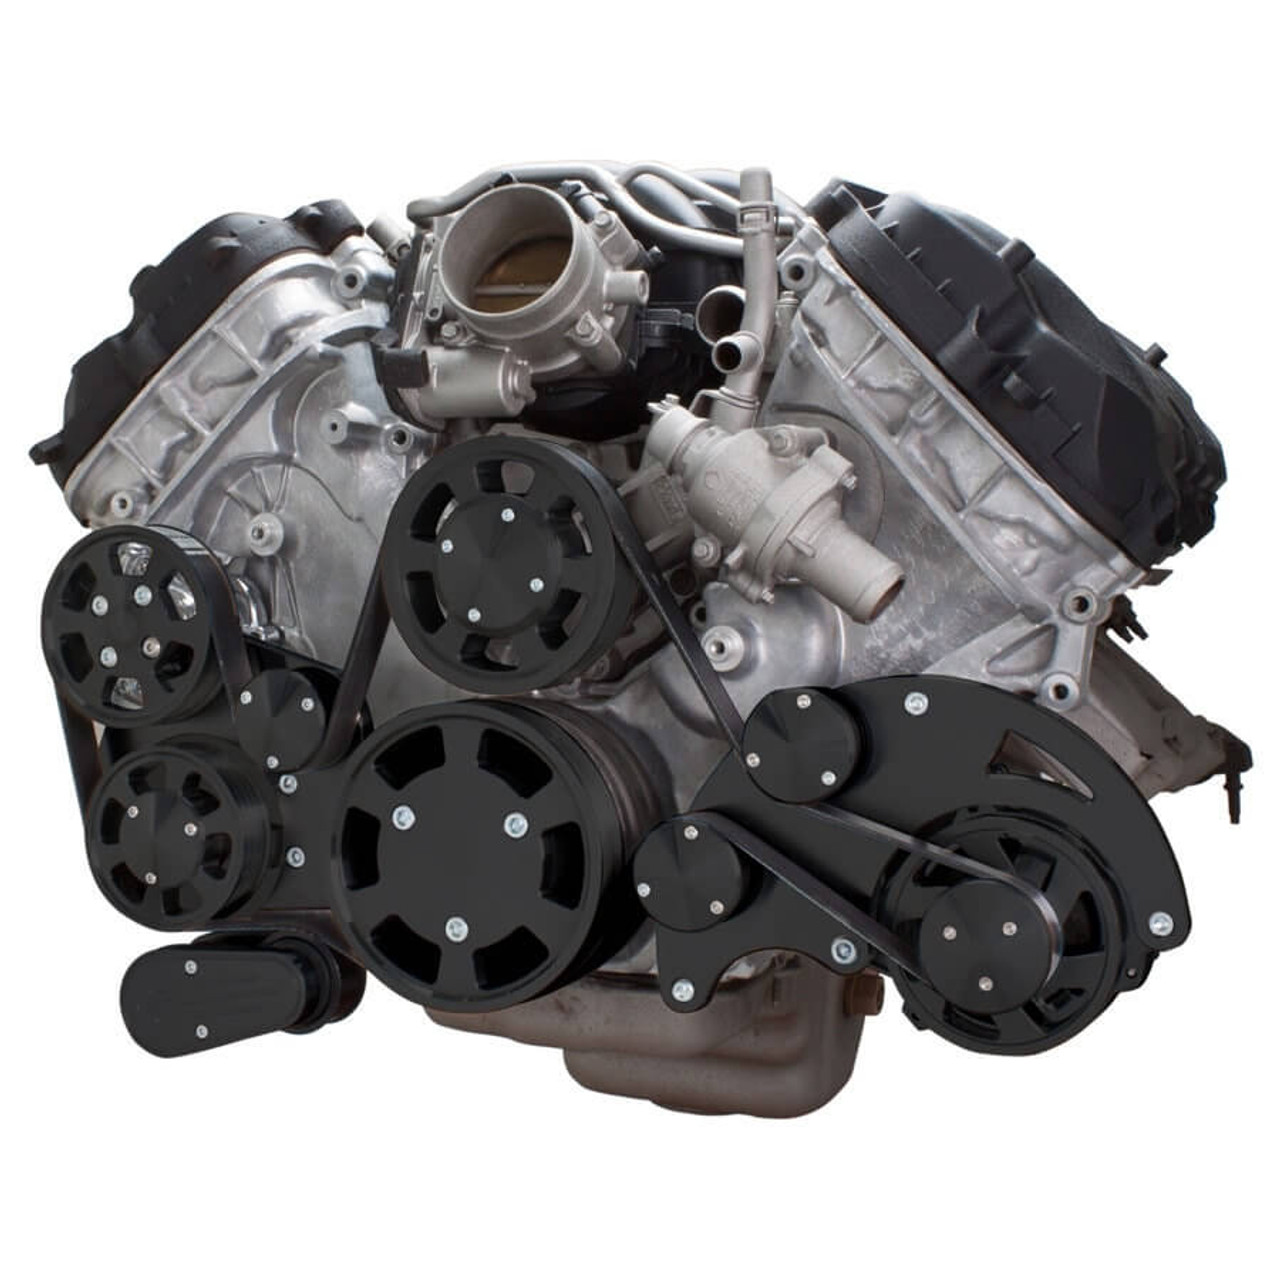 Stealth Black Serpentine System for Ford Coyote 5.0 - Alternator & Power  Steering ...